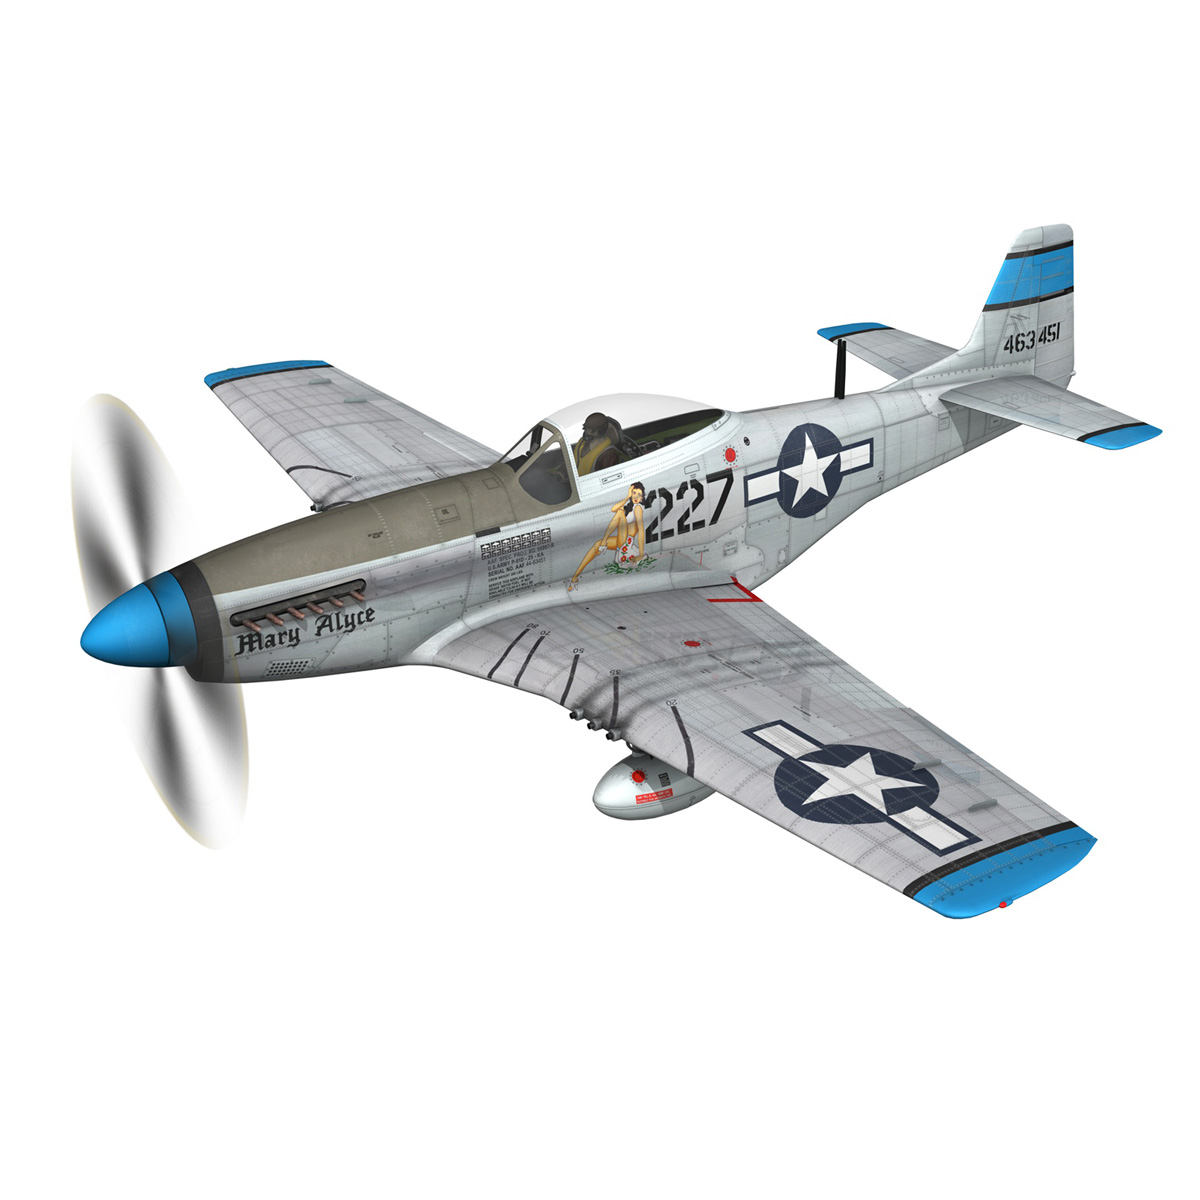 north american p-51d – mustang – mary alyce 3d model 3ds fbx c4d lwo obj 267569